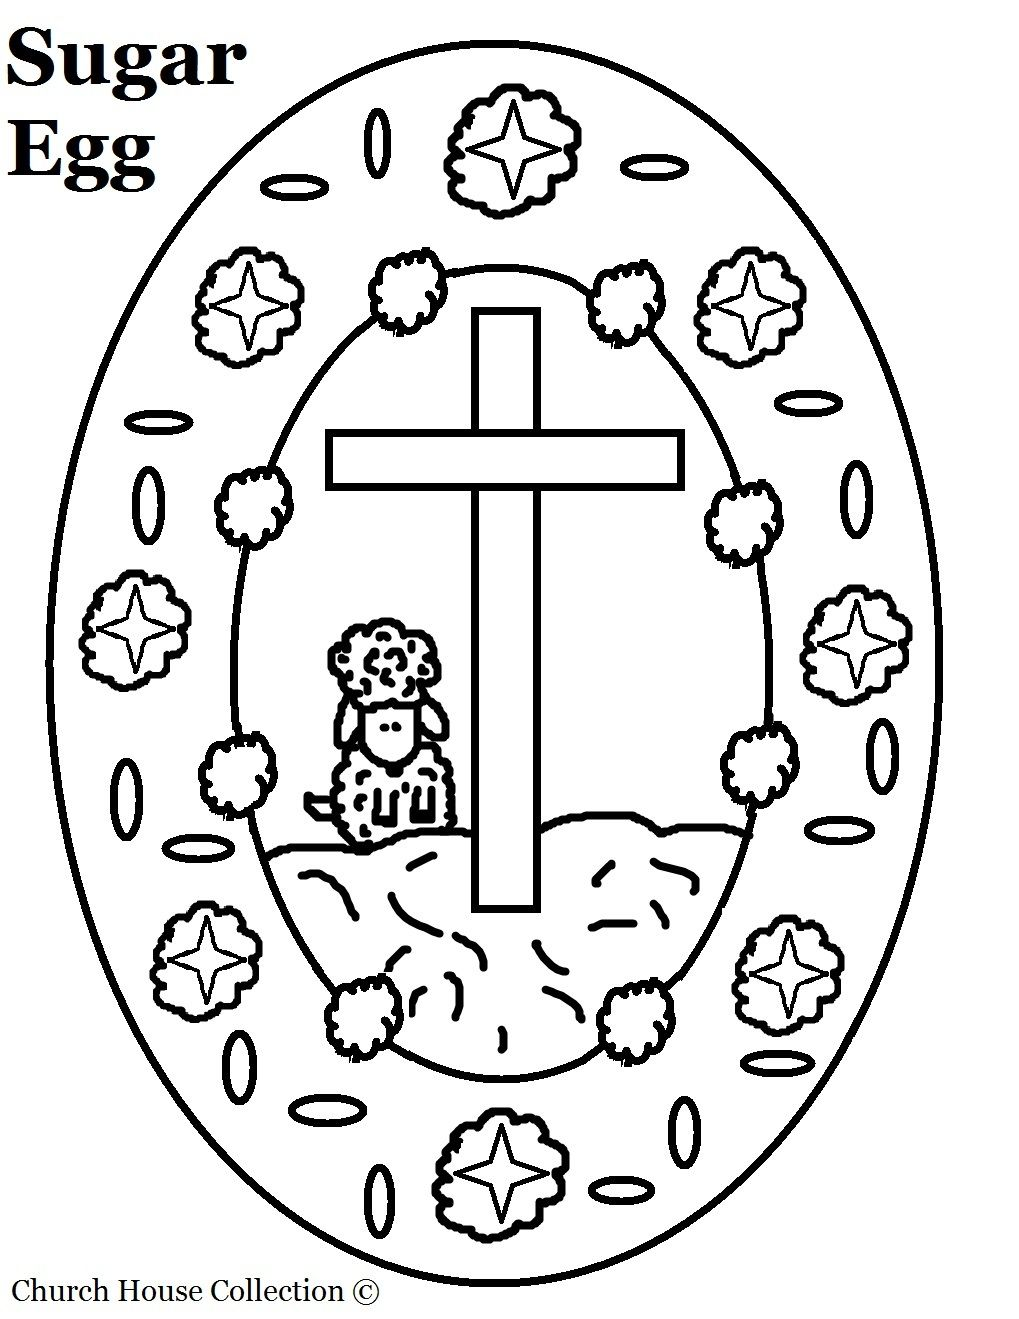 Easter eggs coloring pages - Christian Easter Egg Coloring Pages Egg Coloring Page Sugar Egg Colored This Is A Free